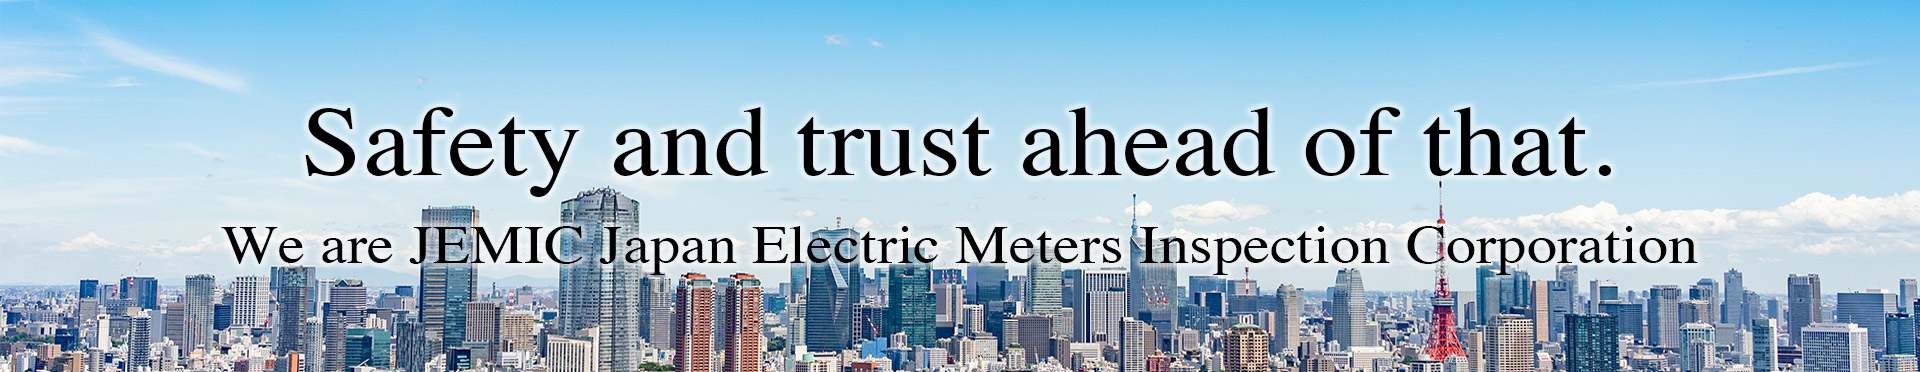 Safety & trust ahead of that. We are JEMIC Japan Electric Meters Inspection Corporation.